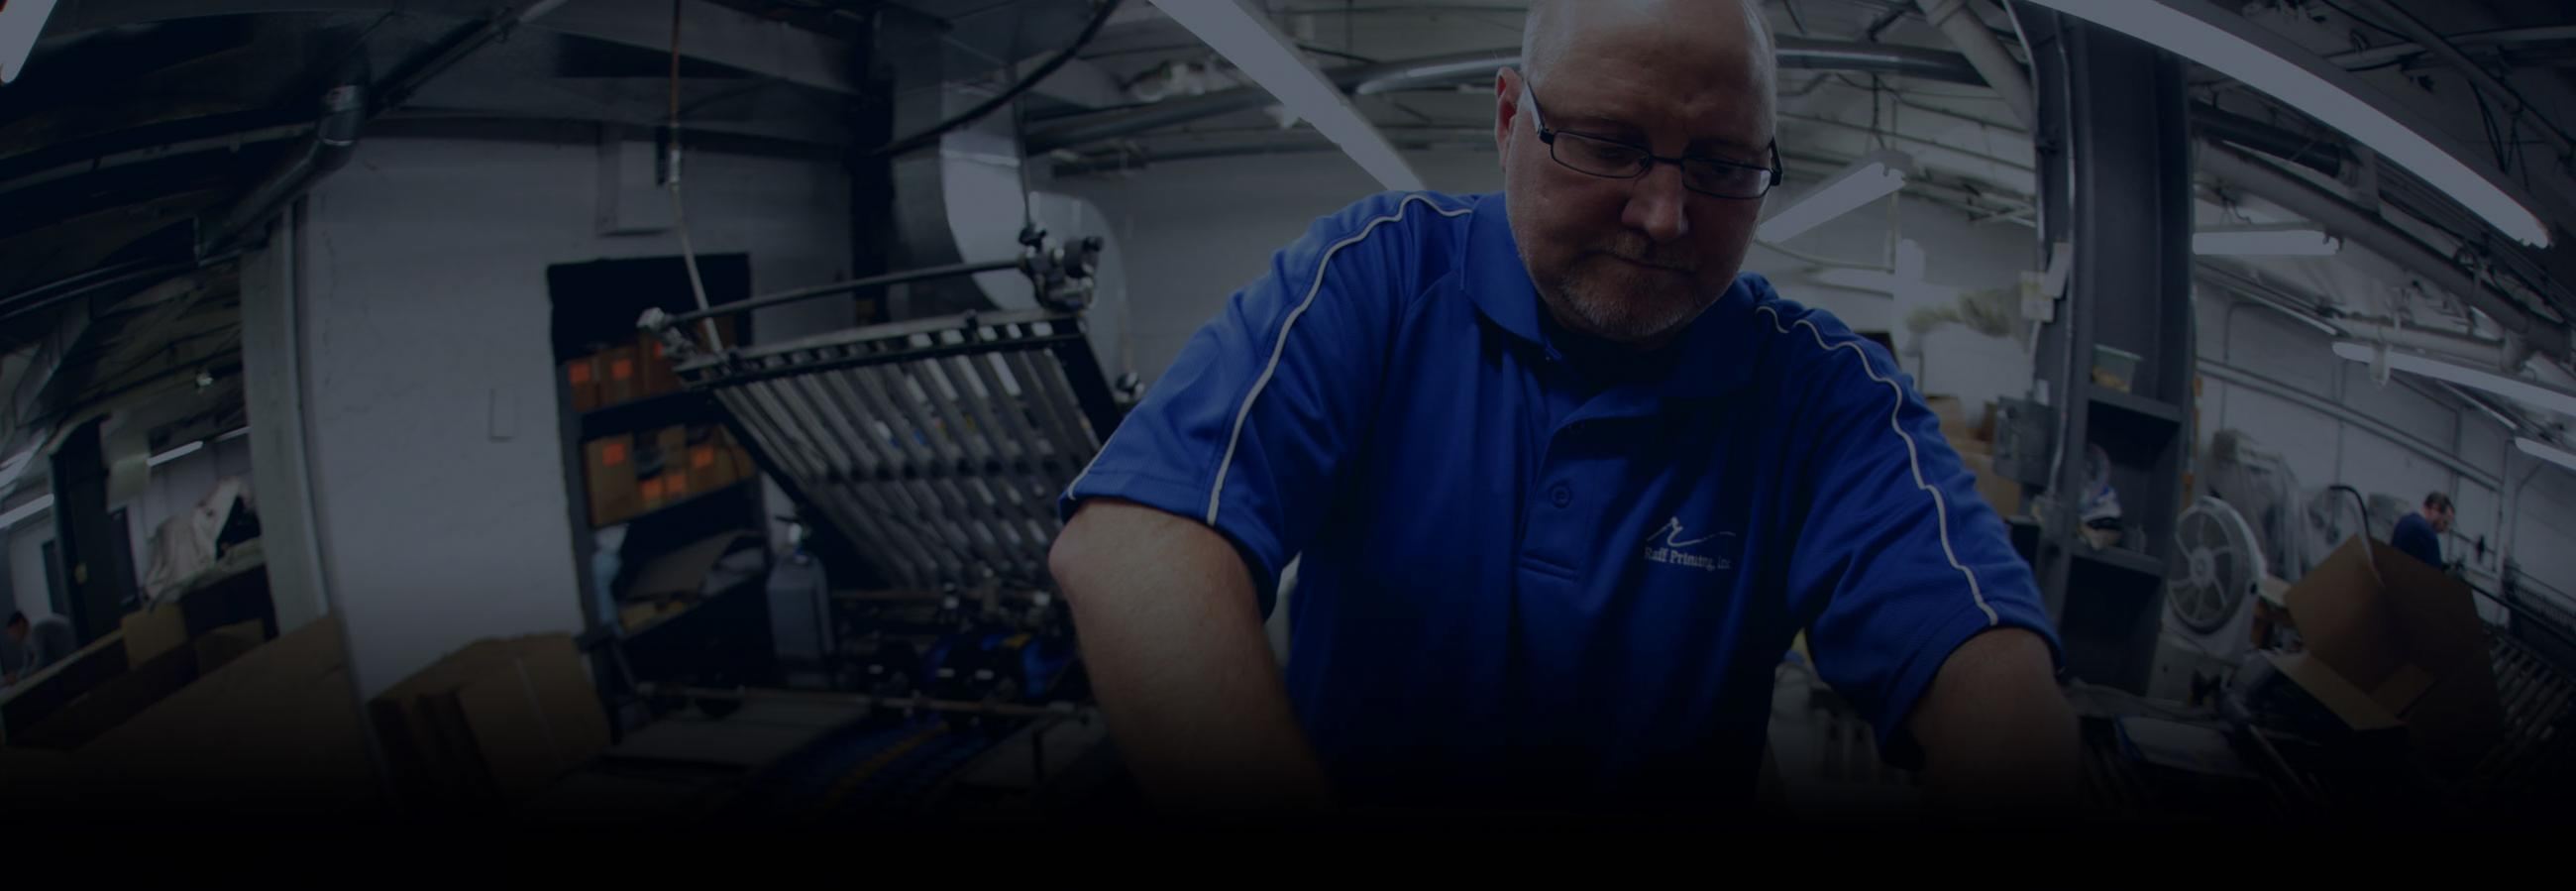 Family of Commercial Printing Experts - Pittsburgh